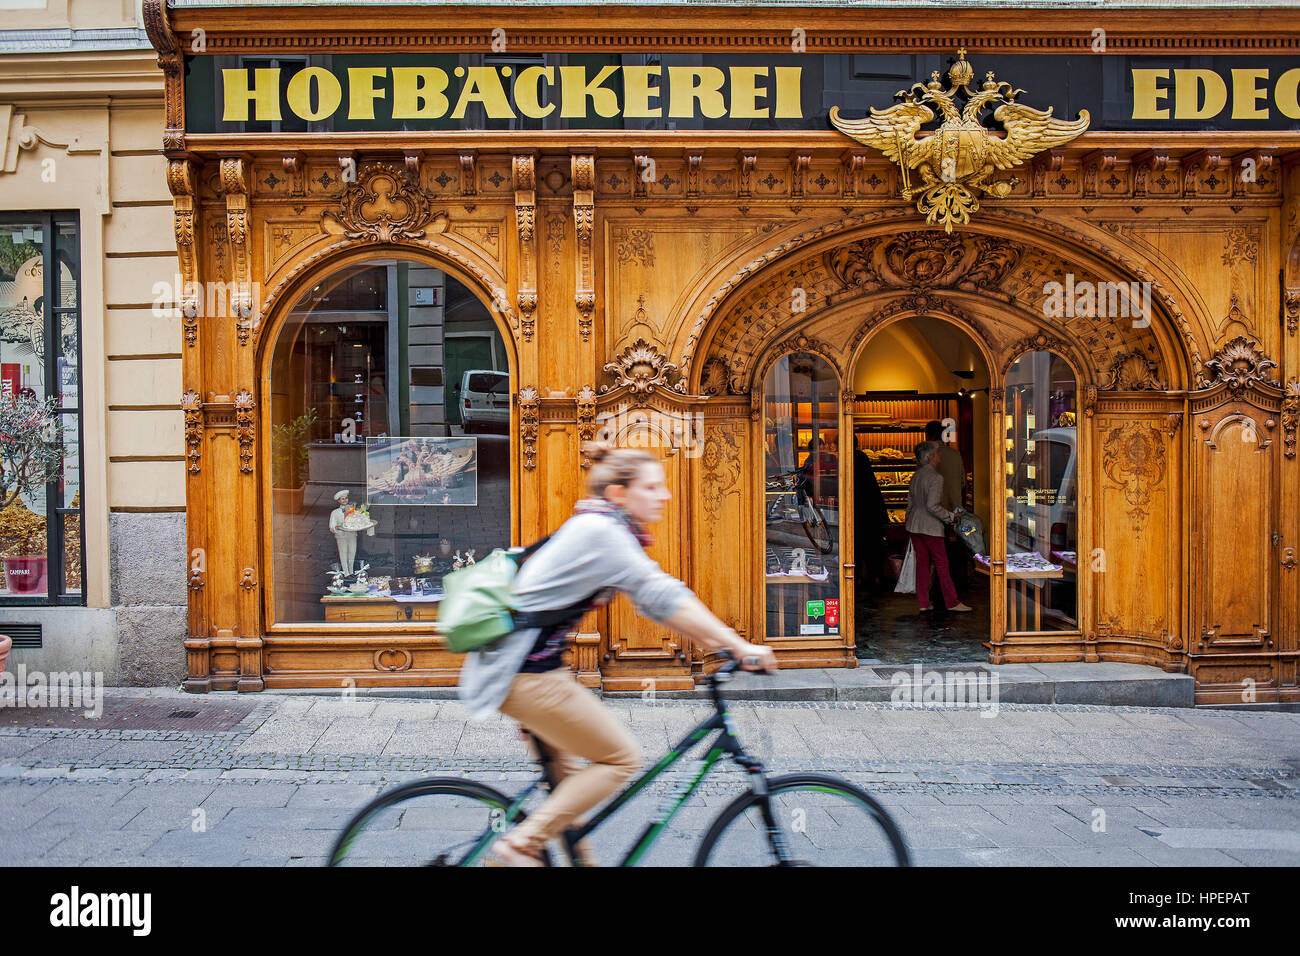 Hofbaeckerei Edegger-Tax in Hofgasse, court bakery, Graz, Austria, Europe Stock Photo